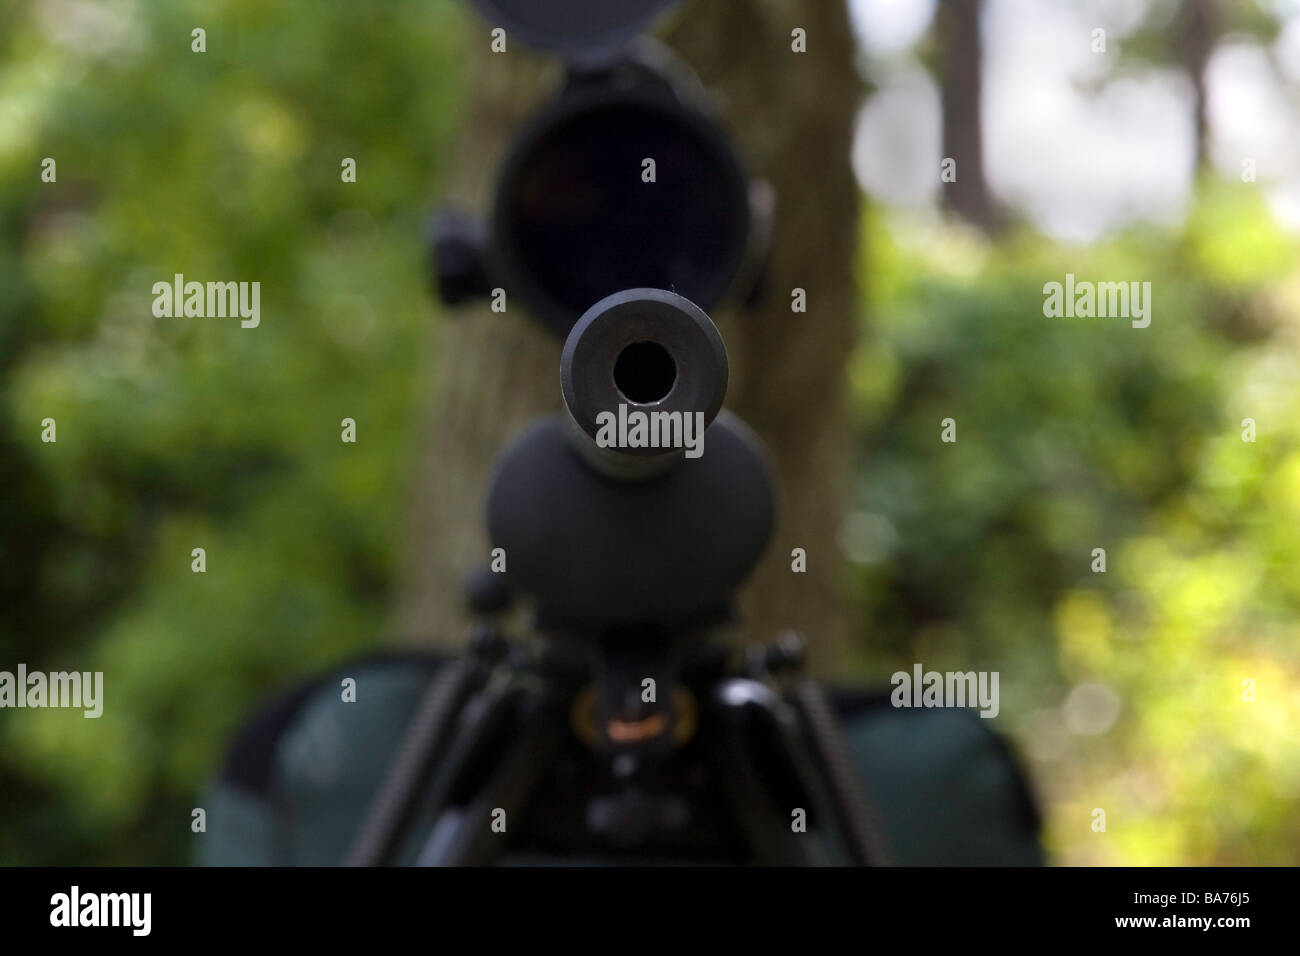 Military police sniper rifle is posed ready for use in the field. - Stock Image